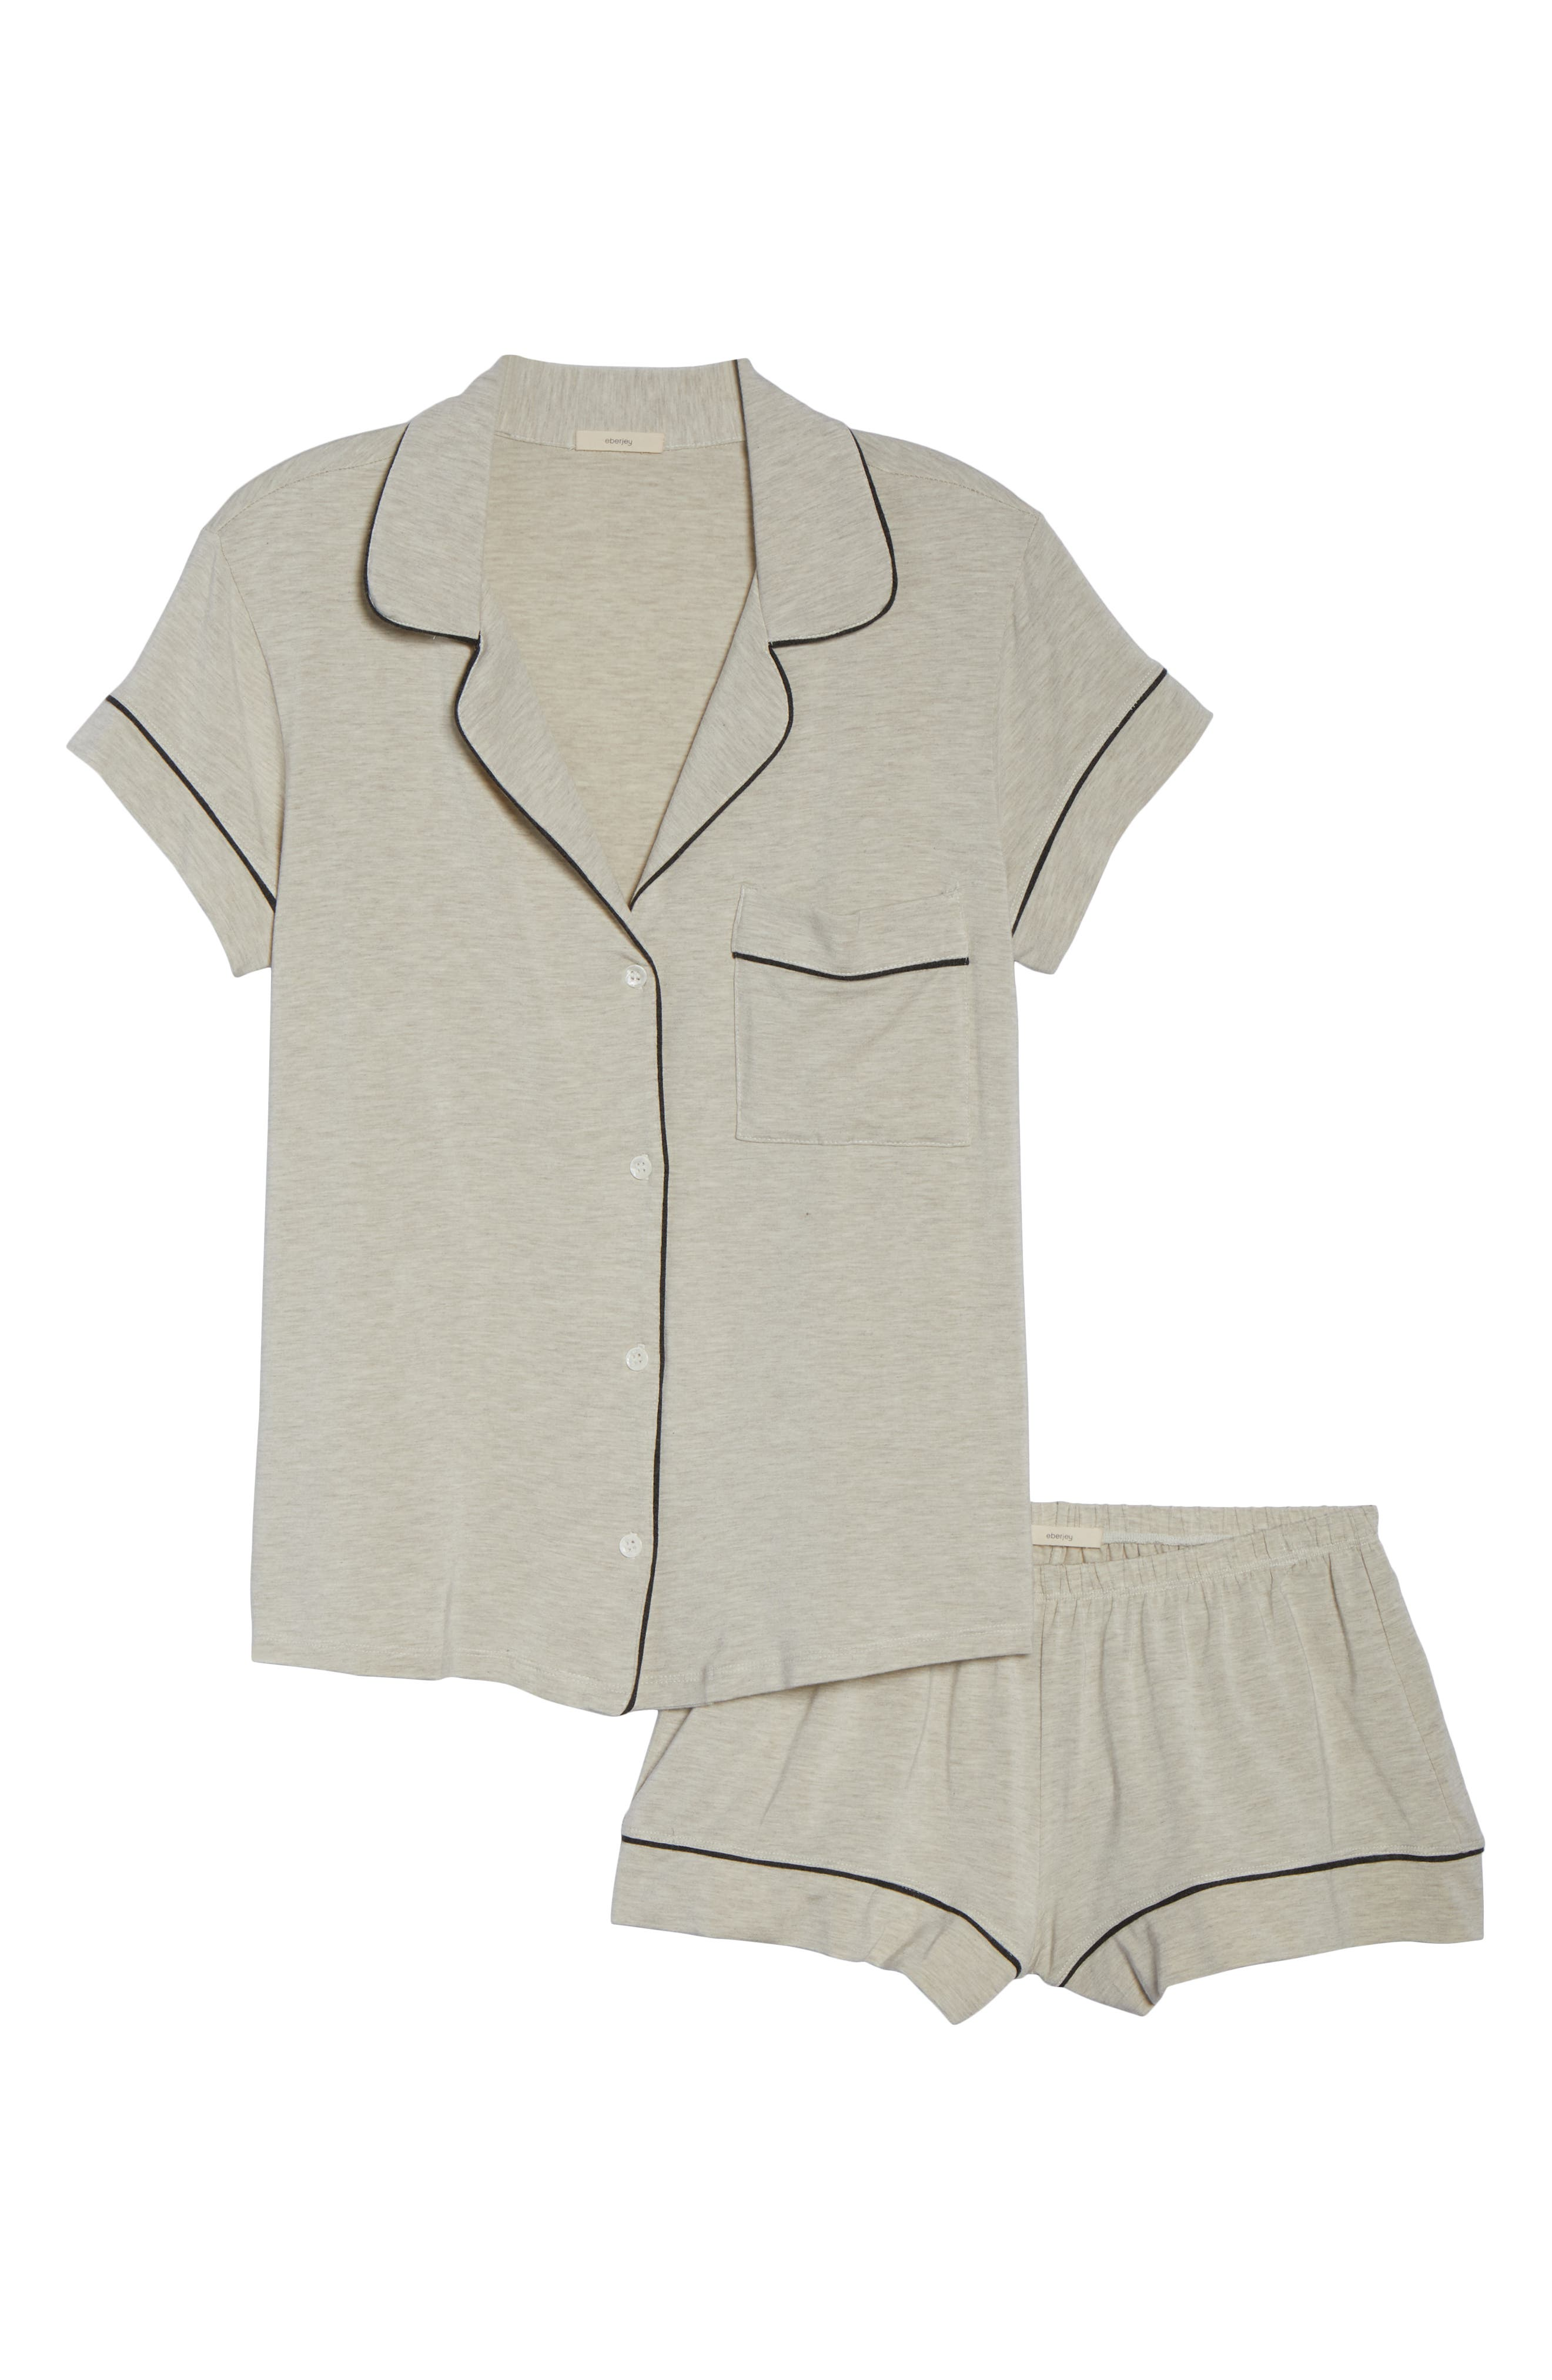 'Gisele' Shorty Pajamas,                             Alternate thumbnail 6, color,                             OATMEAL HEATHER/ CHARCOAL